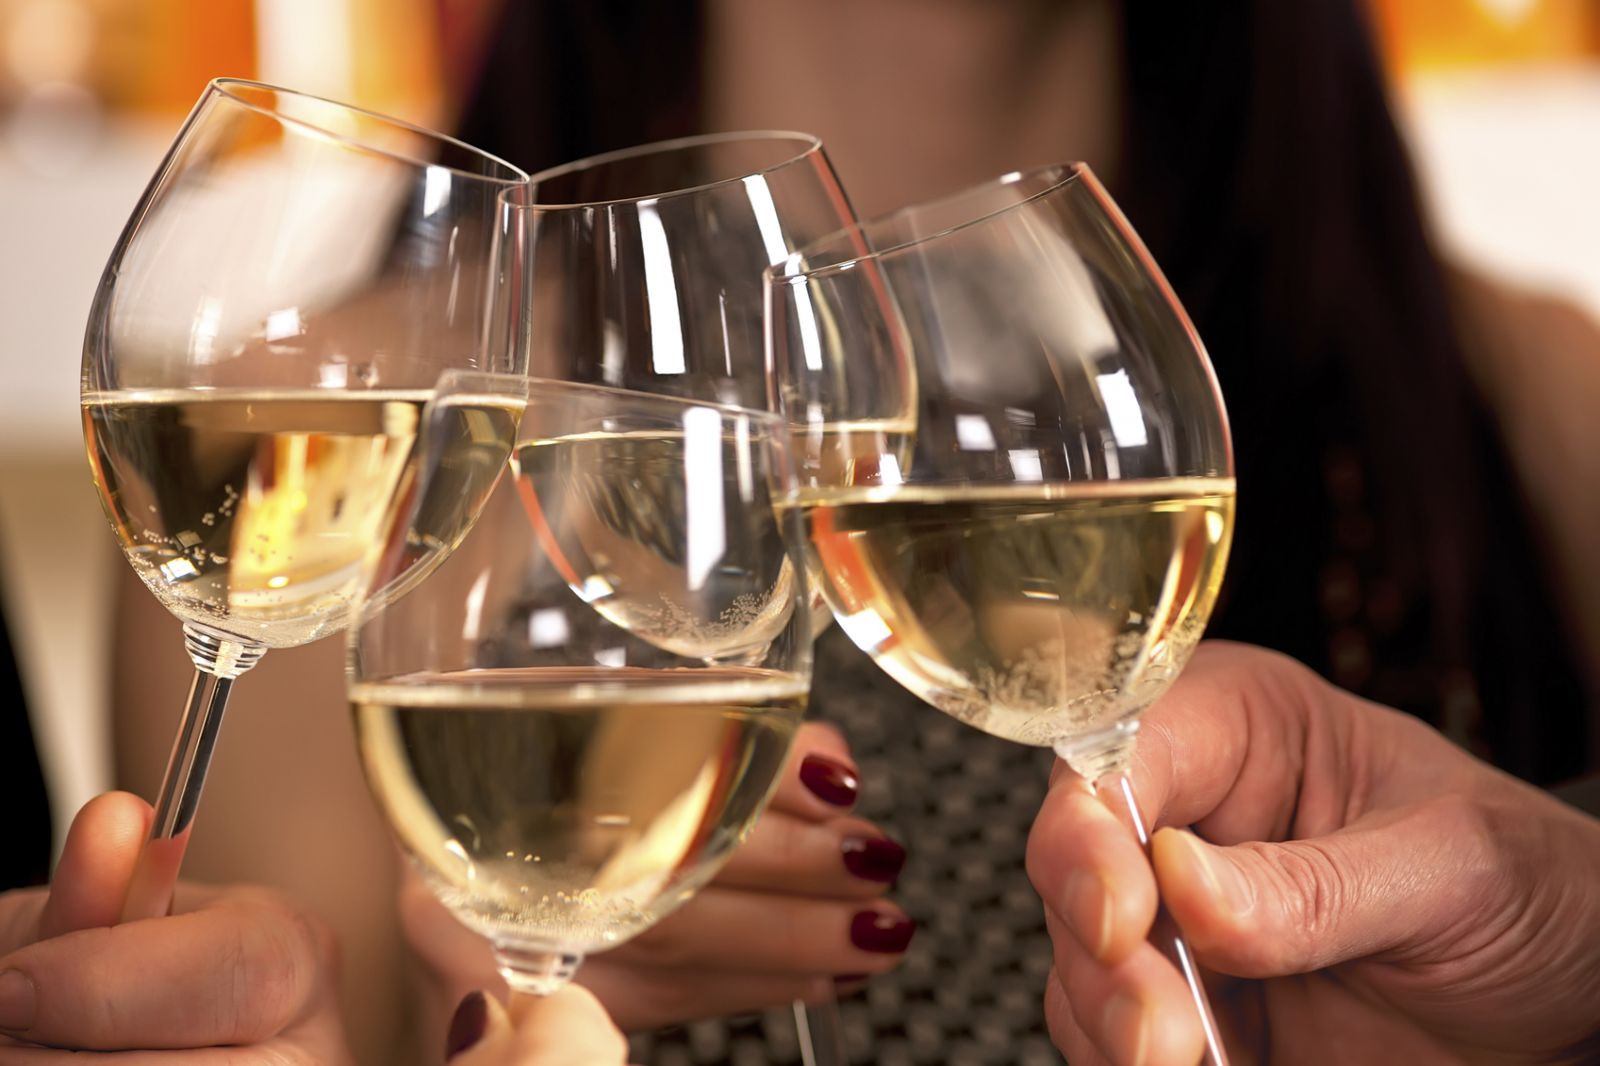 At what age is alcohol use unsafe? - Harvard Health